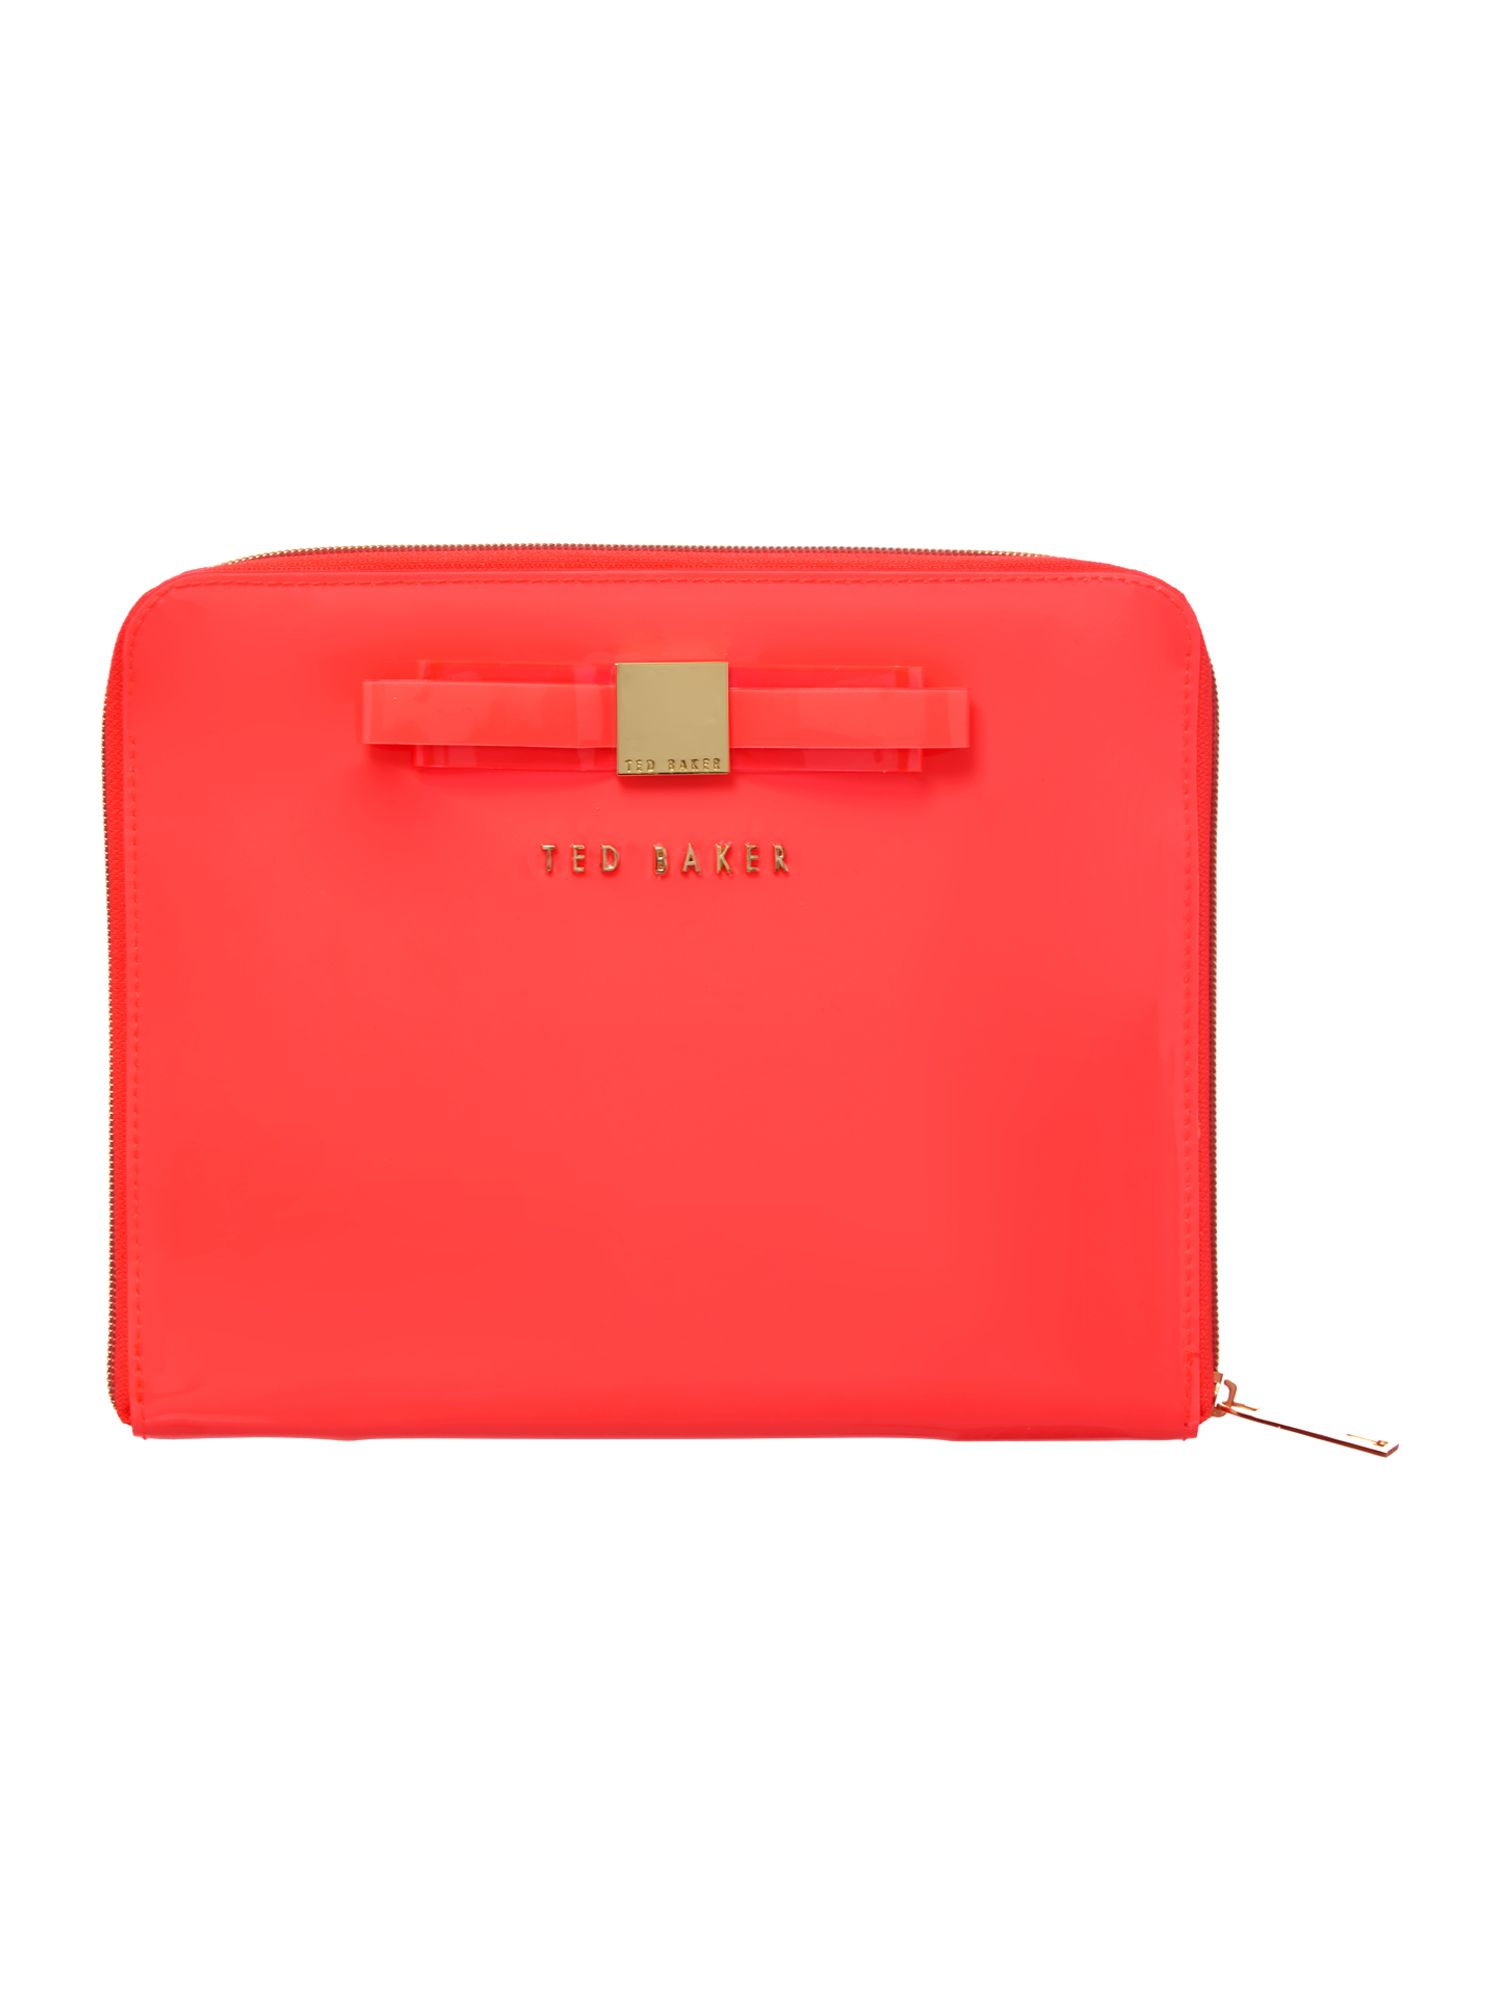 Large pink iPad case